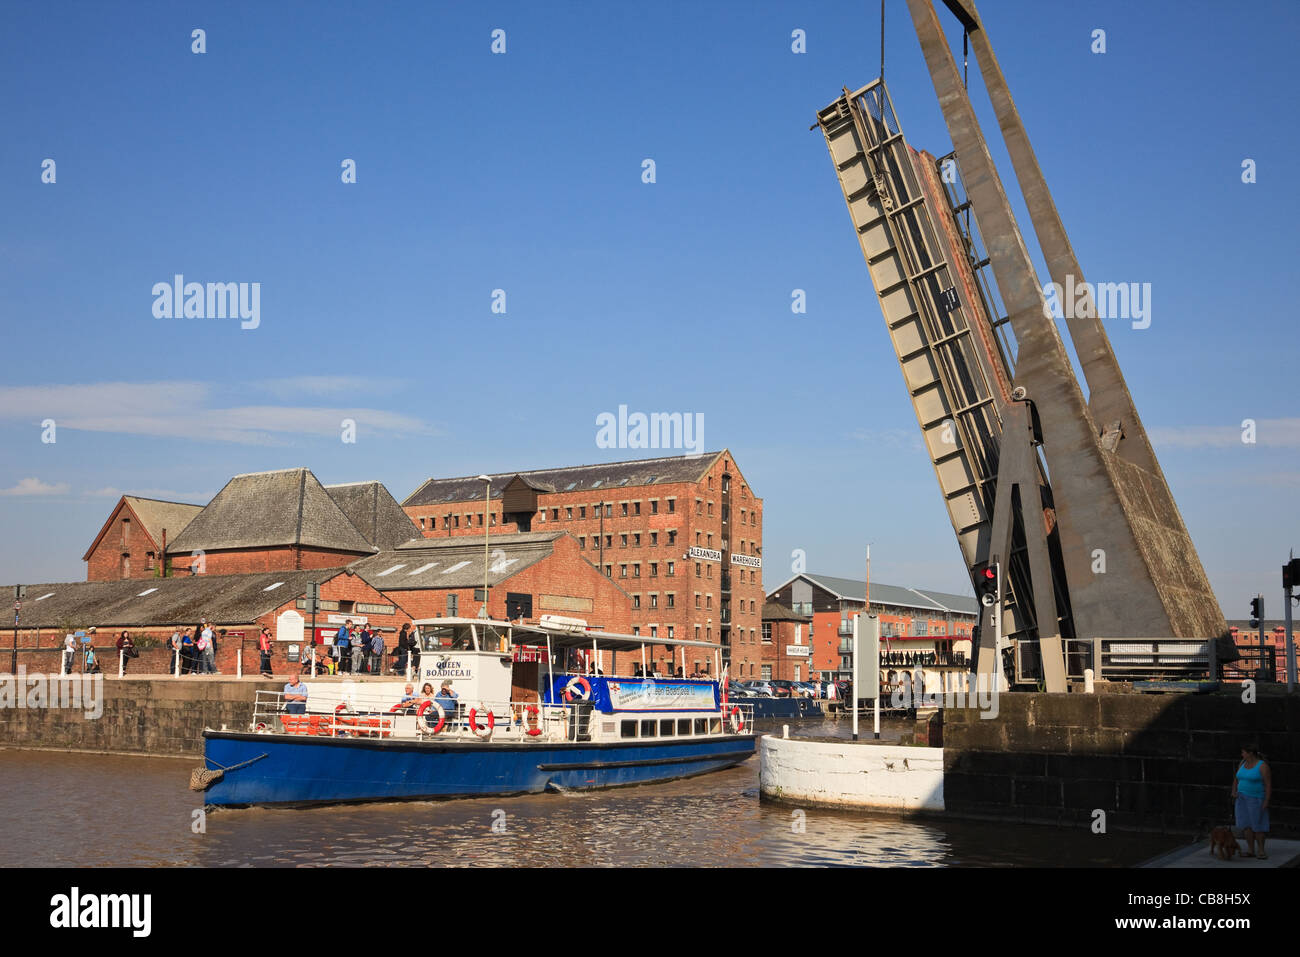 Queen Boadicea II boat passing under raised Llanthony lift bridge on Gloucester and Sharpness canal Gloucester Docks - Stock Image